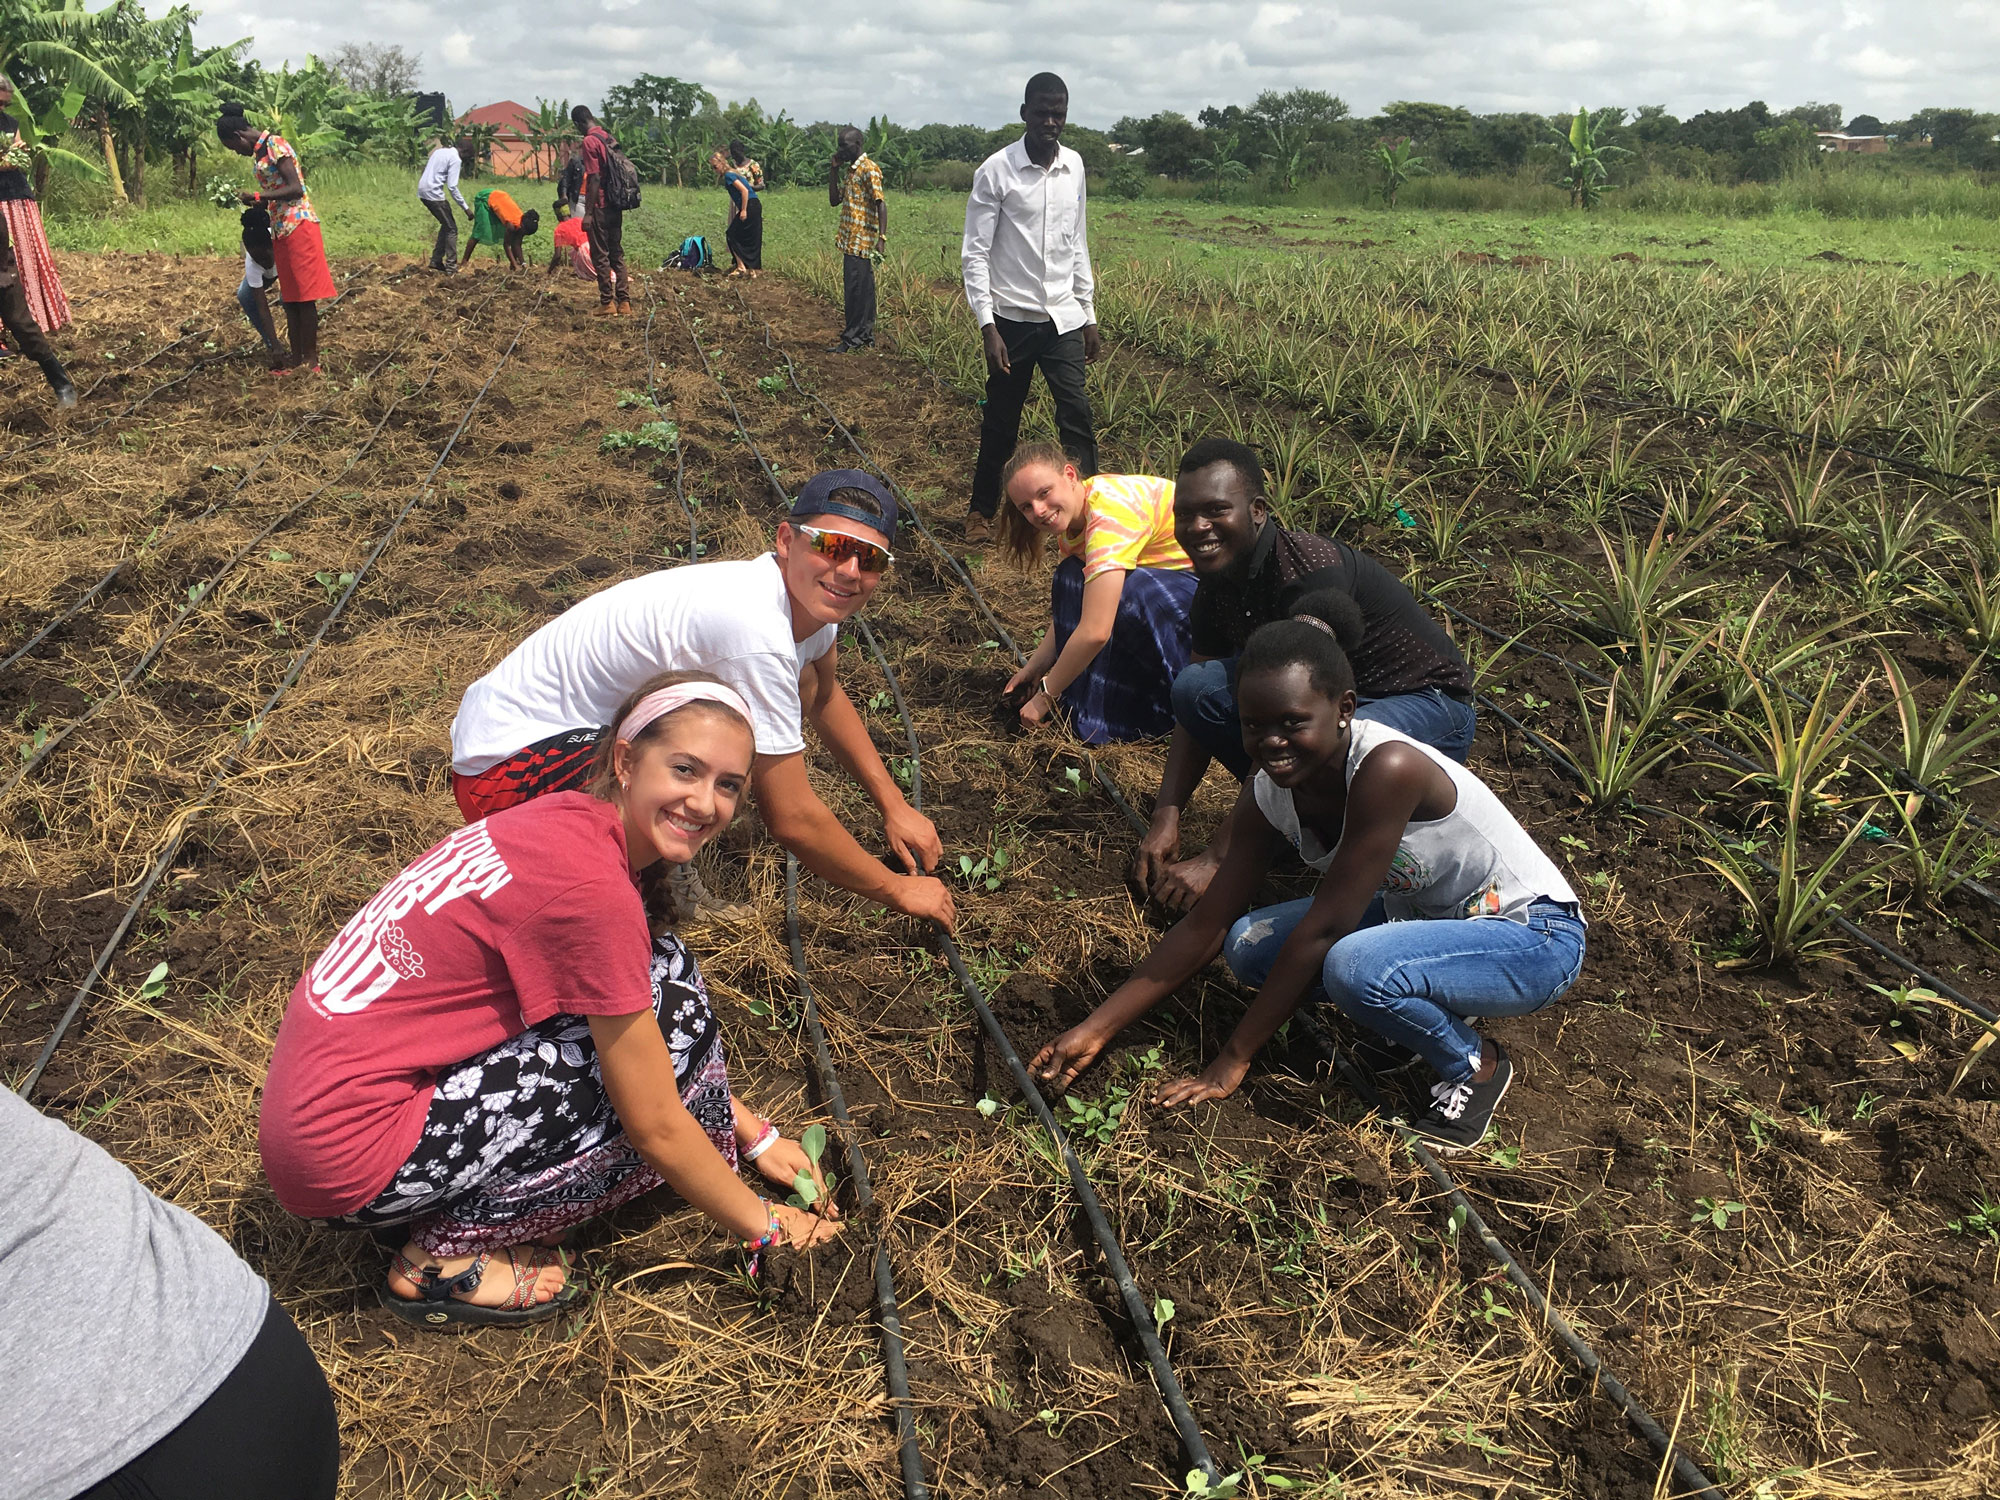 Some of the youth group help transplant cabbages at Bar-Lonyo.